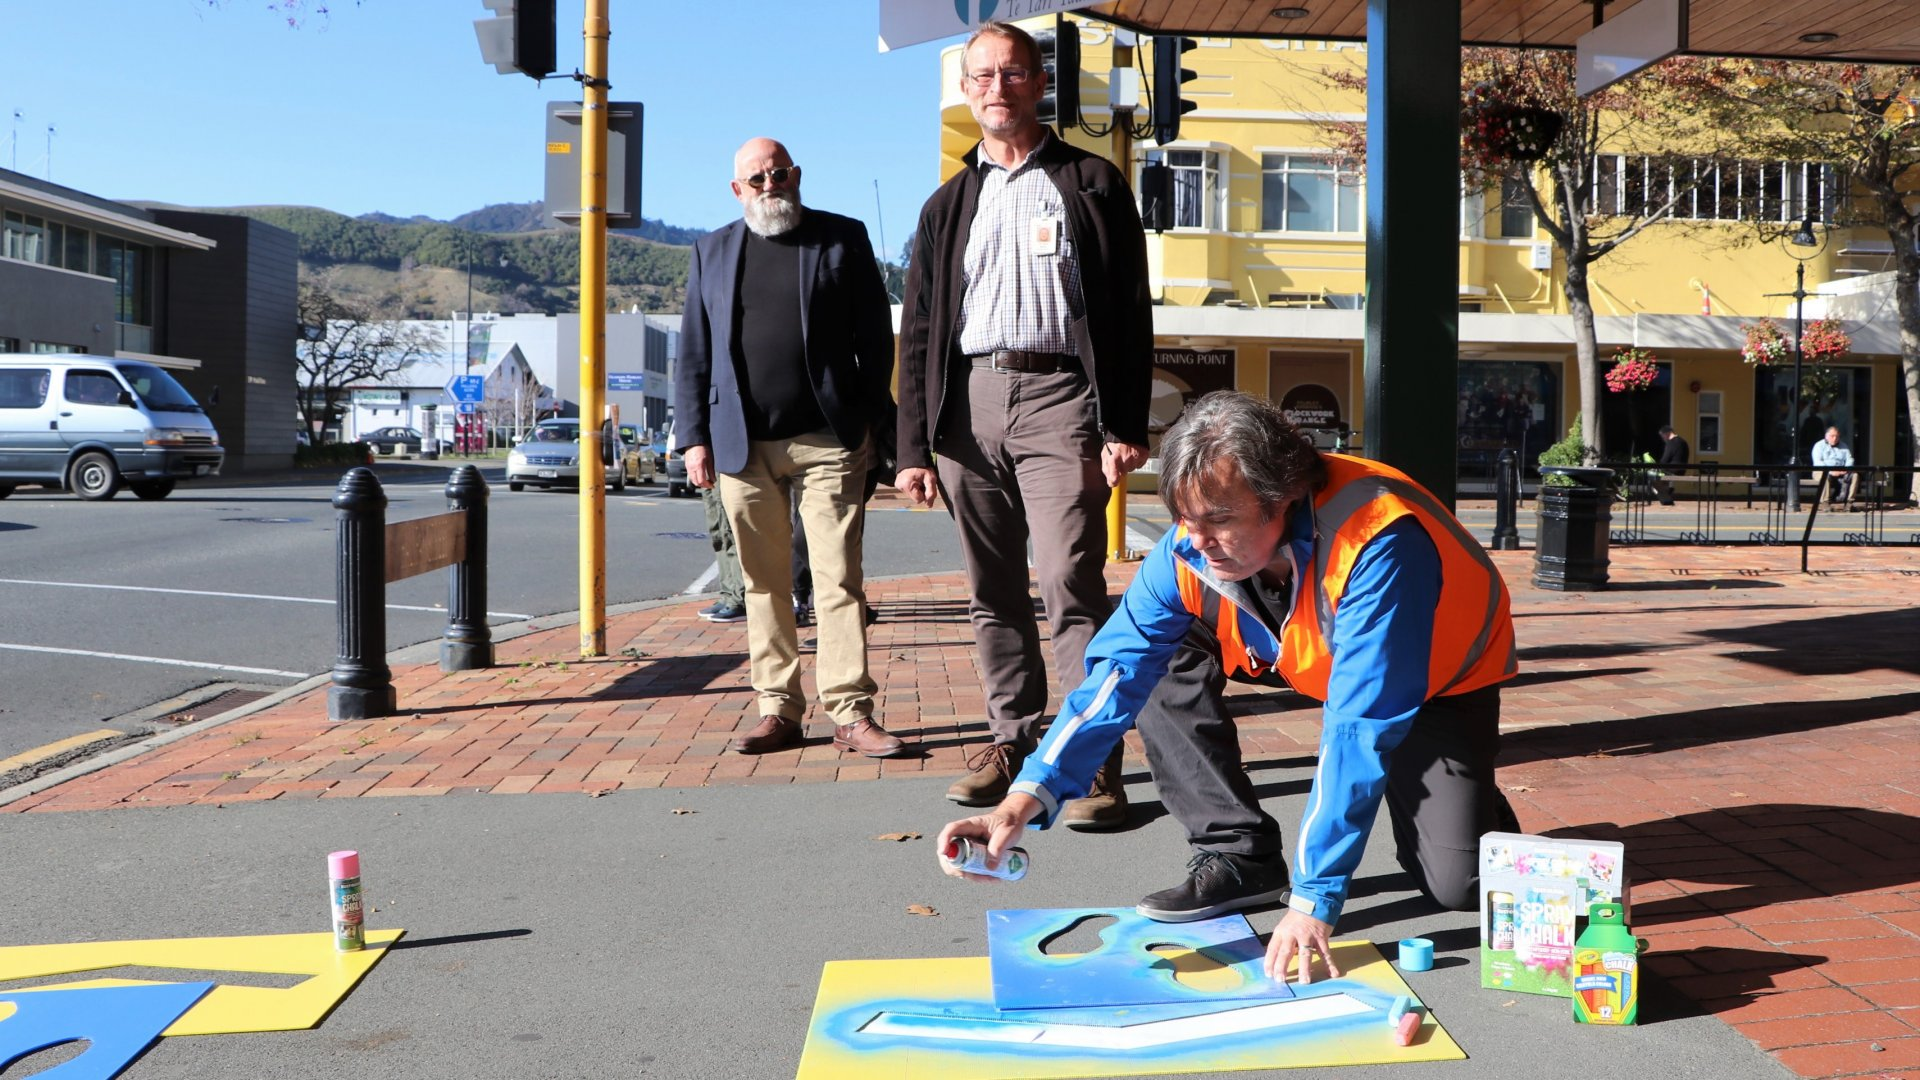 Councillor Pete Rainey (left) and Chief Medical Officer for Nelson Marlborough Health Dr Nick Baker are shown the stencils outside Civic House by City Centre Development Programme Lead Alan Gray.